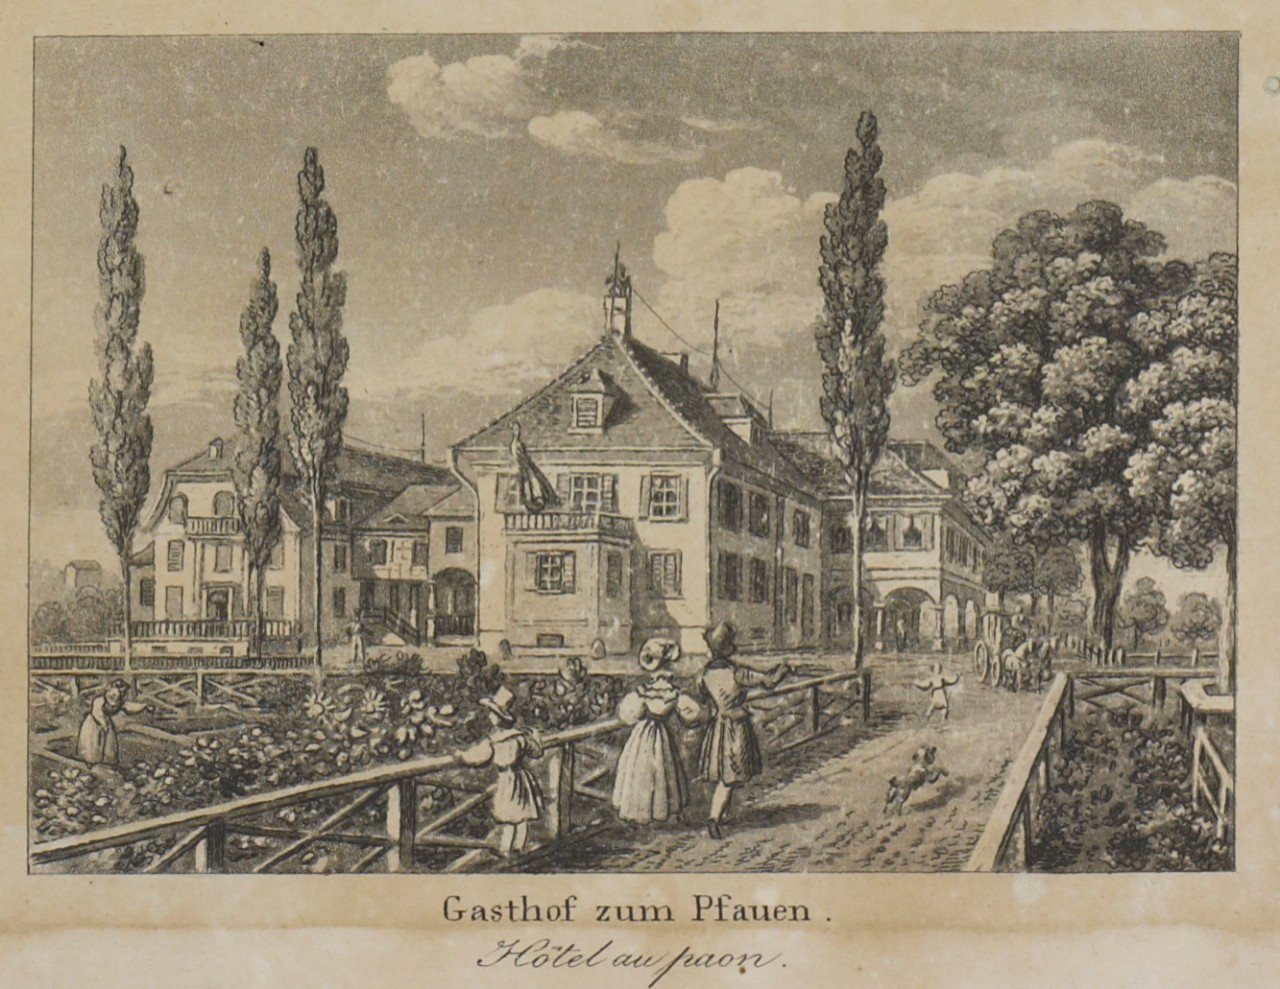 Cooper stayed overnight at the Pfauen in Rapperswil on his first and third trips to the canton of St. Gallen.  Partial view of Rapperswil from an engraving, around 1833. State Archive: Reference Number: ZMH 57/054